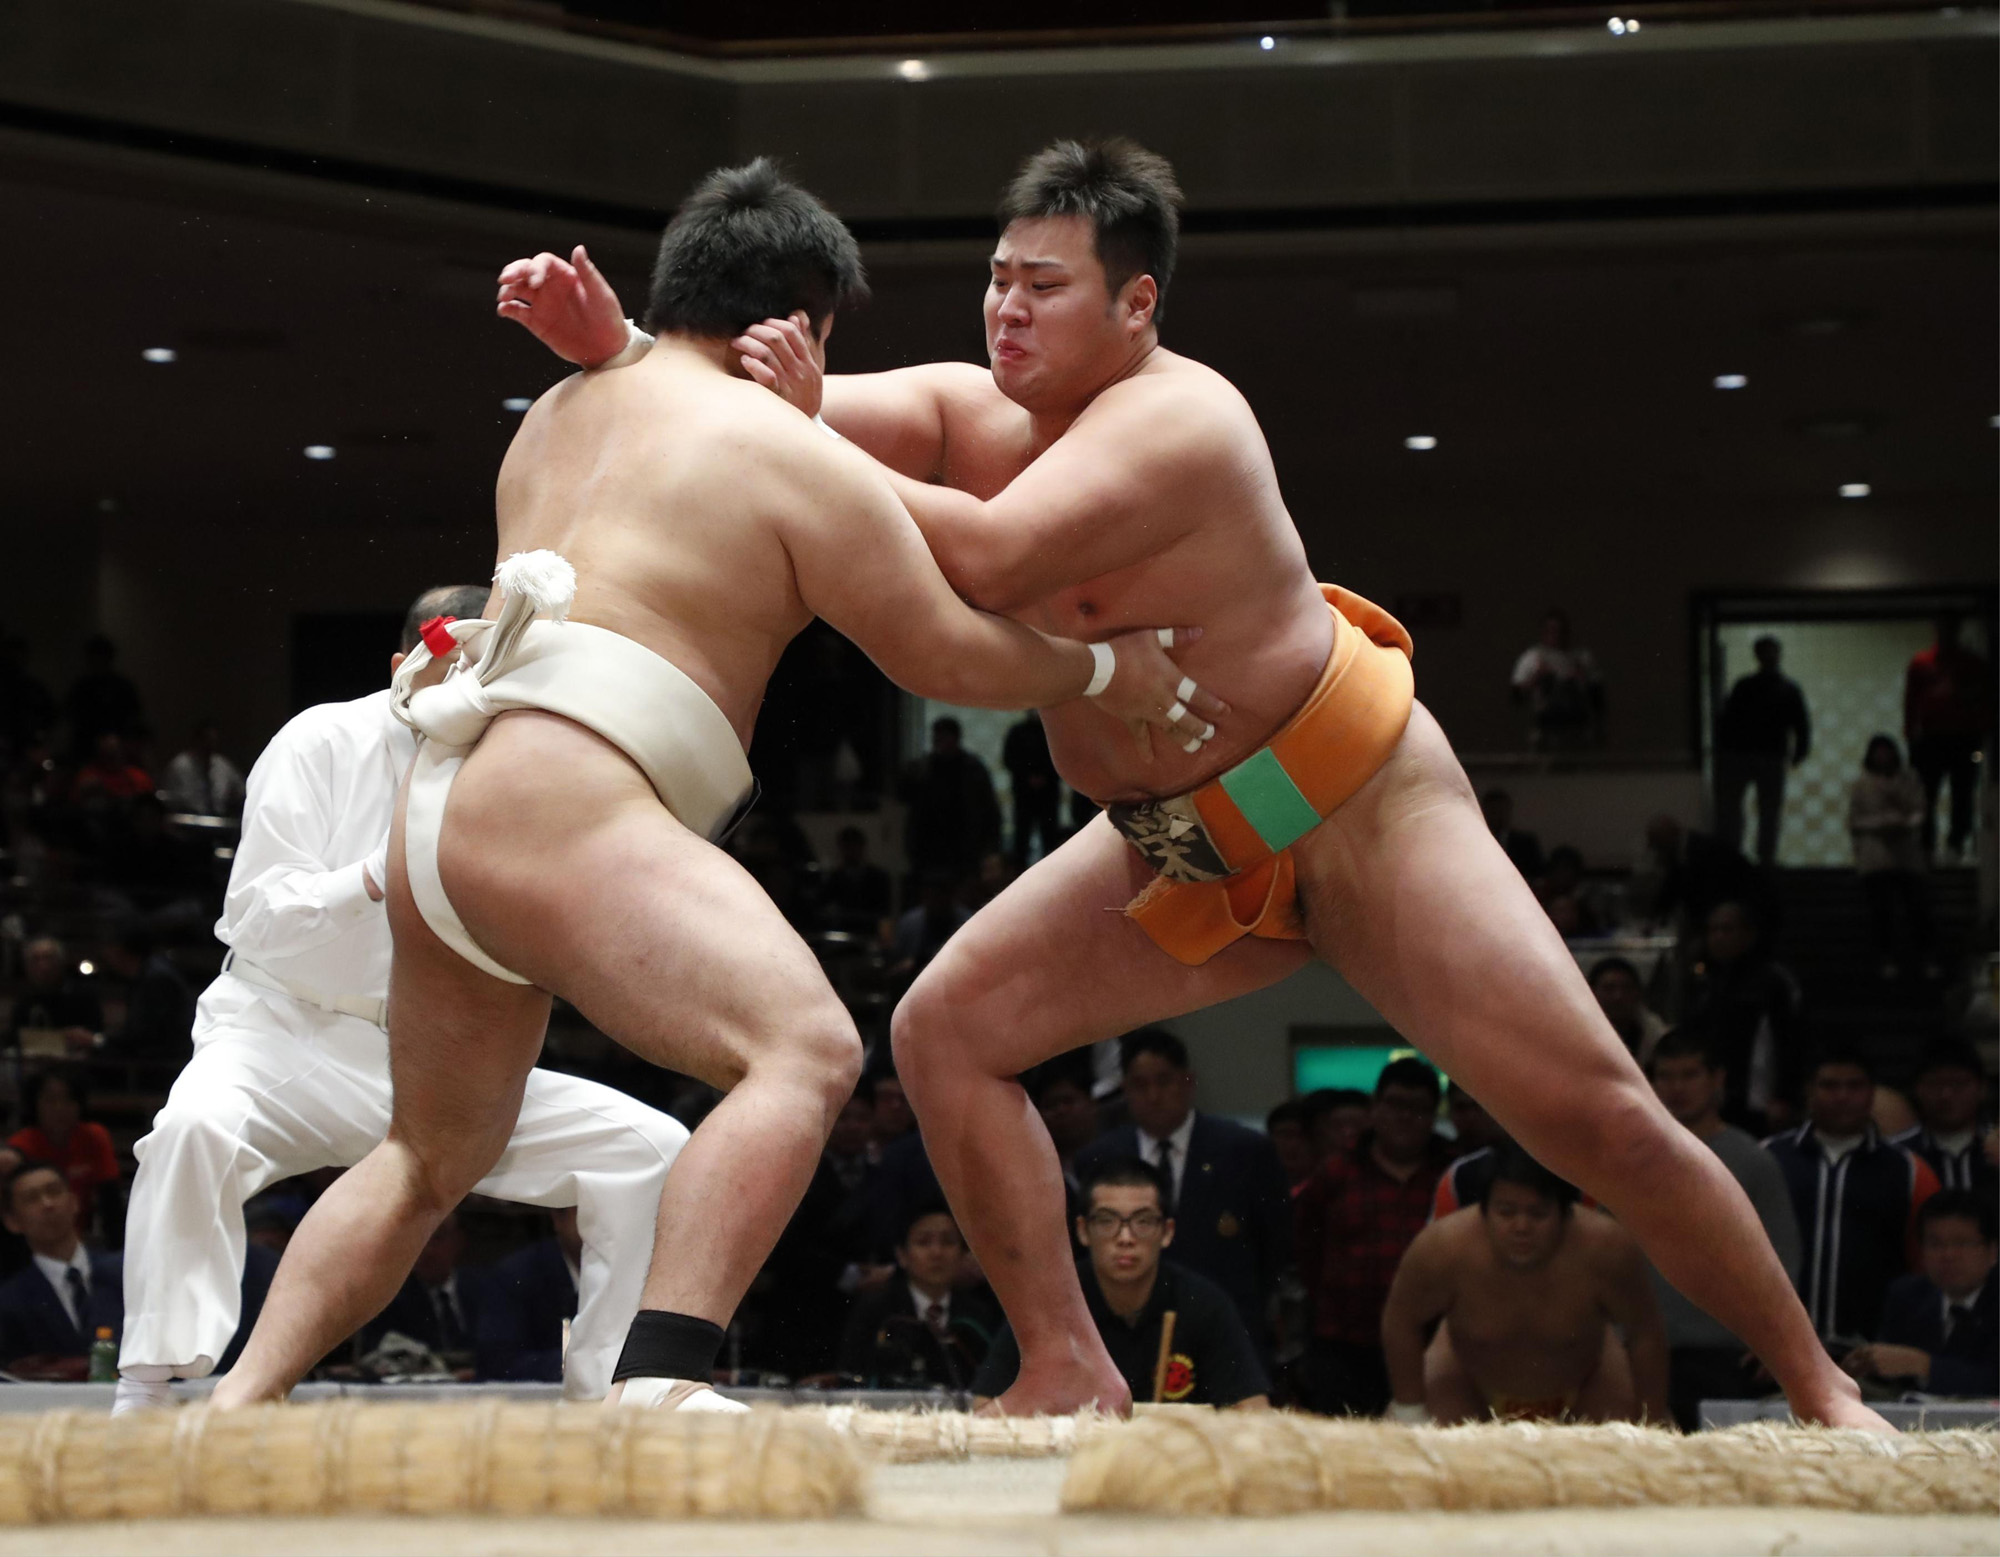 Amateur rikishi compete during a competition on Dec. 4, 2018, at Ryogoku Kokugikan. | KYODO